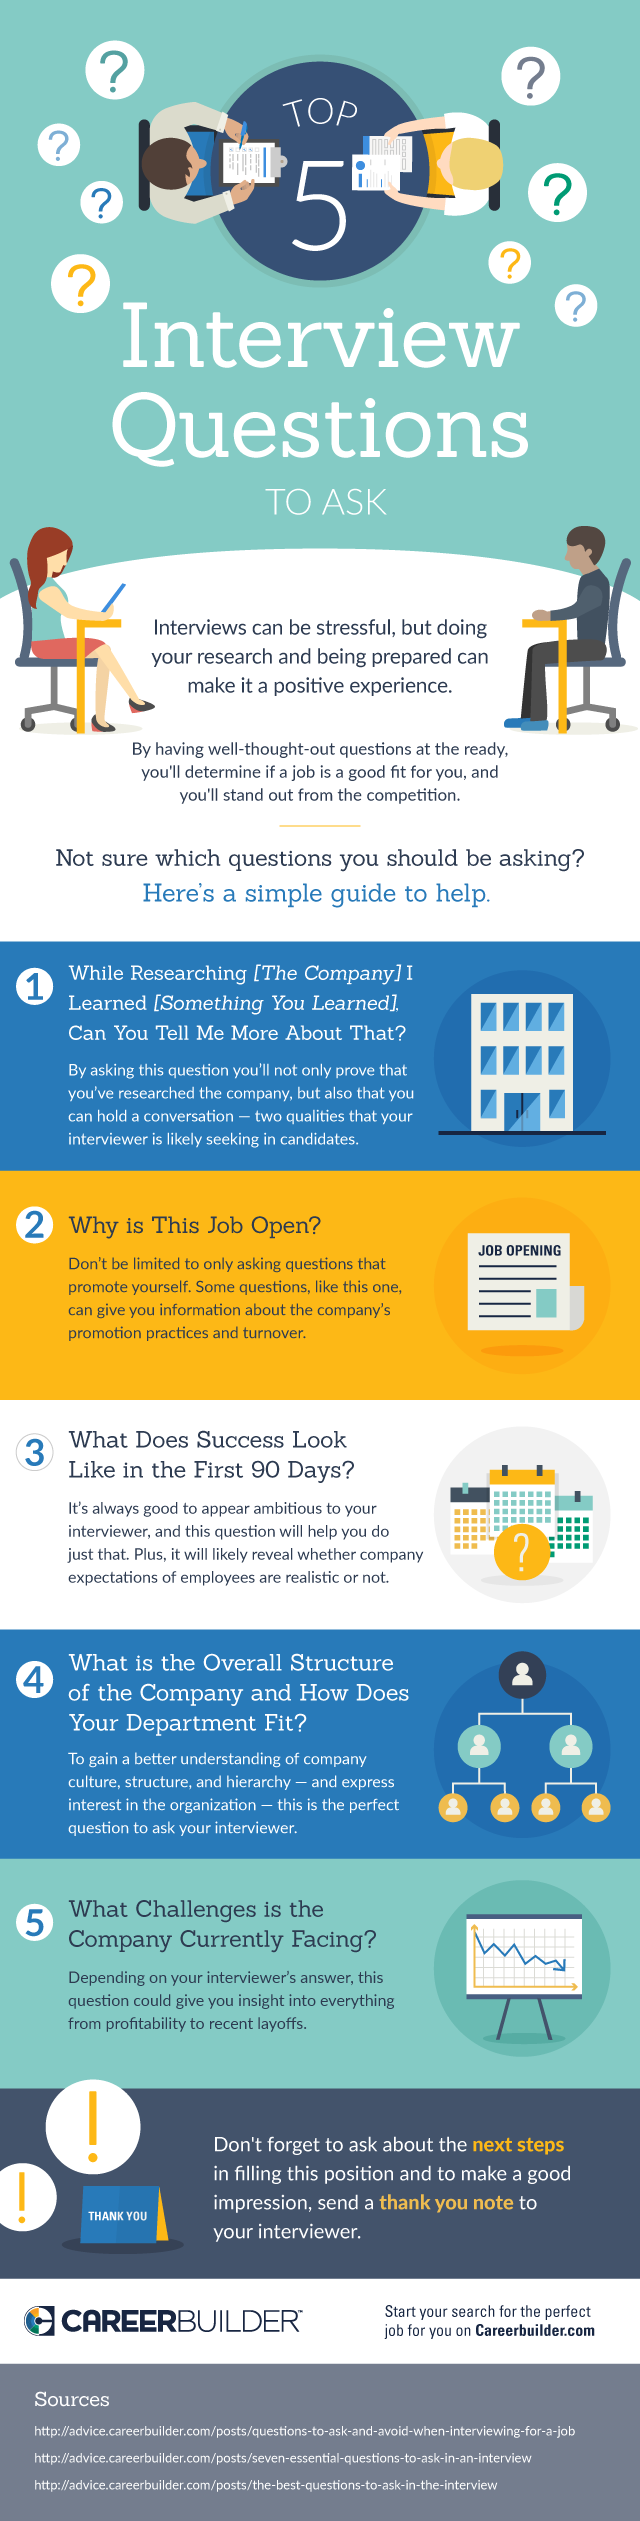 top questions to ask in your next interview careerbuilder not sure which questions you should ask at the end of your next interview here are your top 5